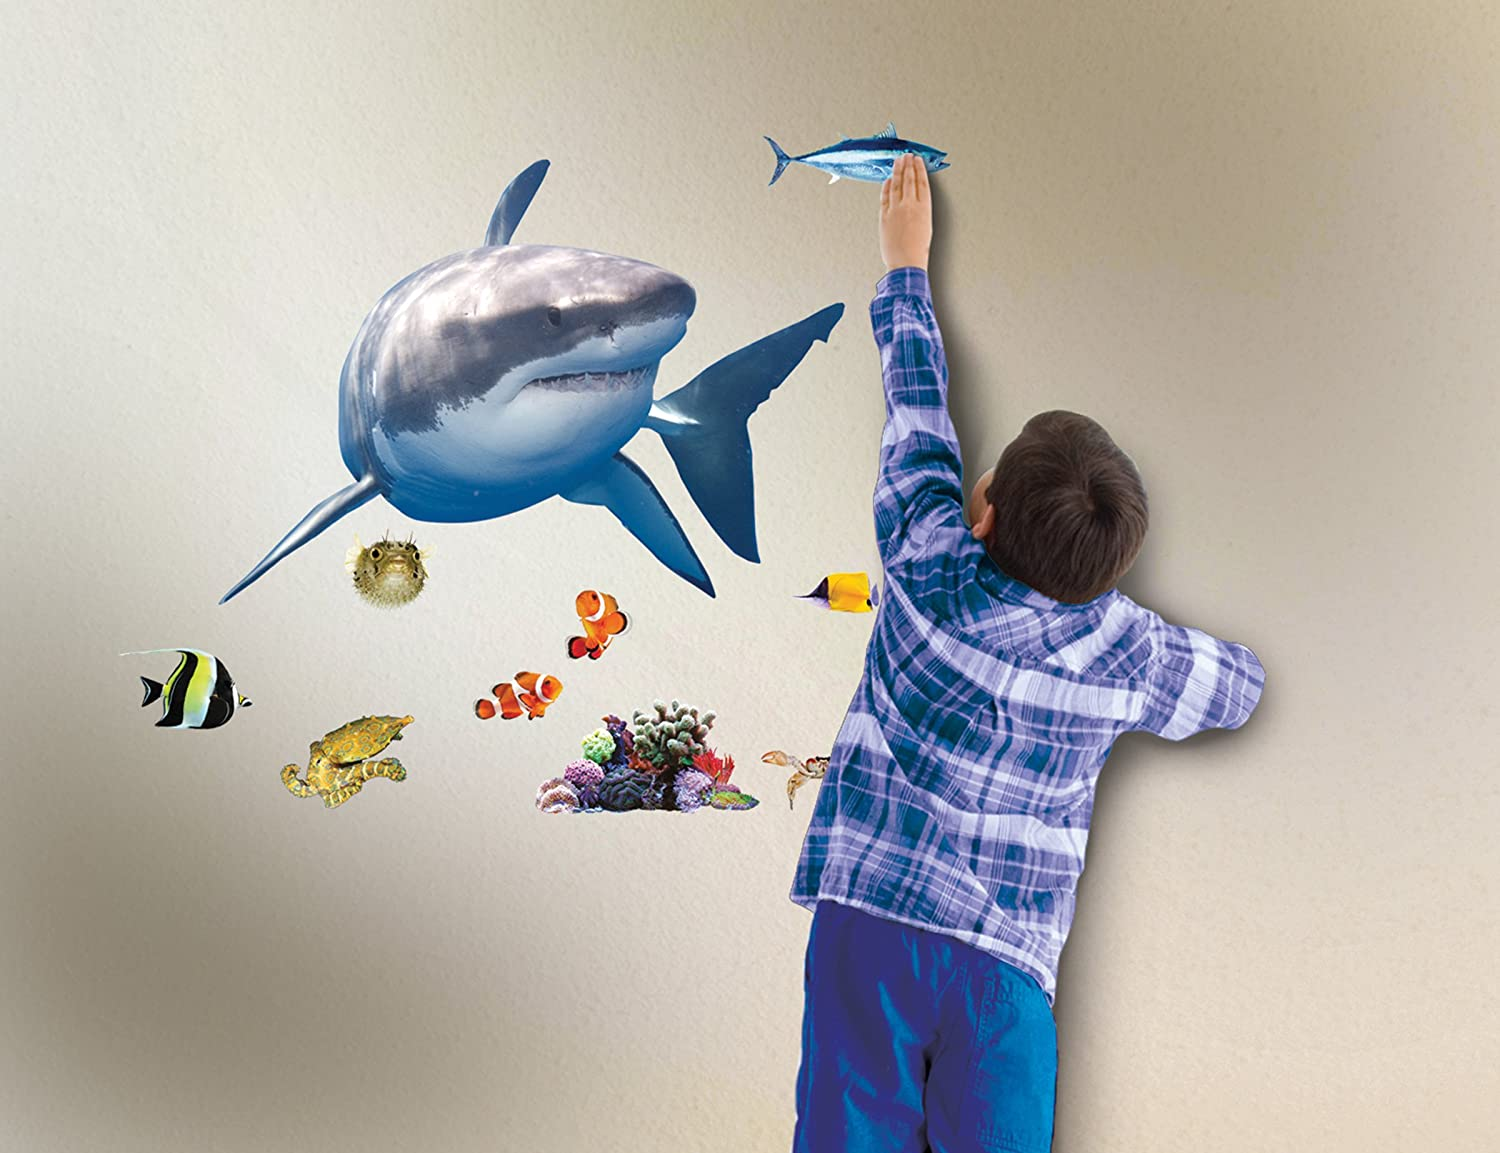 Amazon.com: In My Room Wild Walls Shark Encounter Wall Decal Light U0026 Sound  Show Room Décor: Toys U0026 Games Part 52